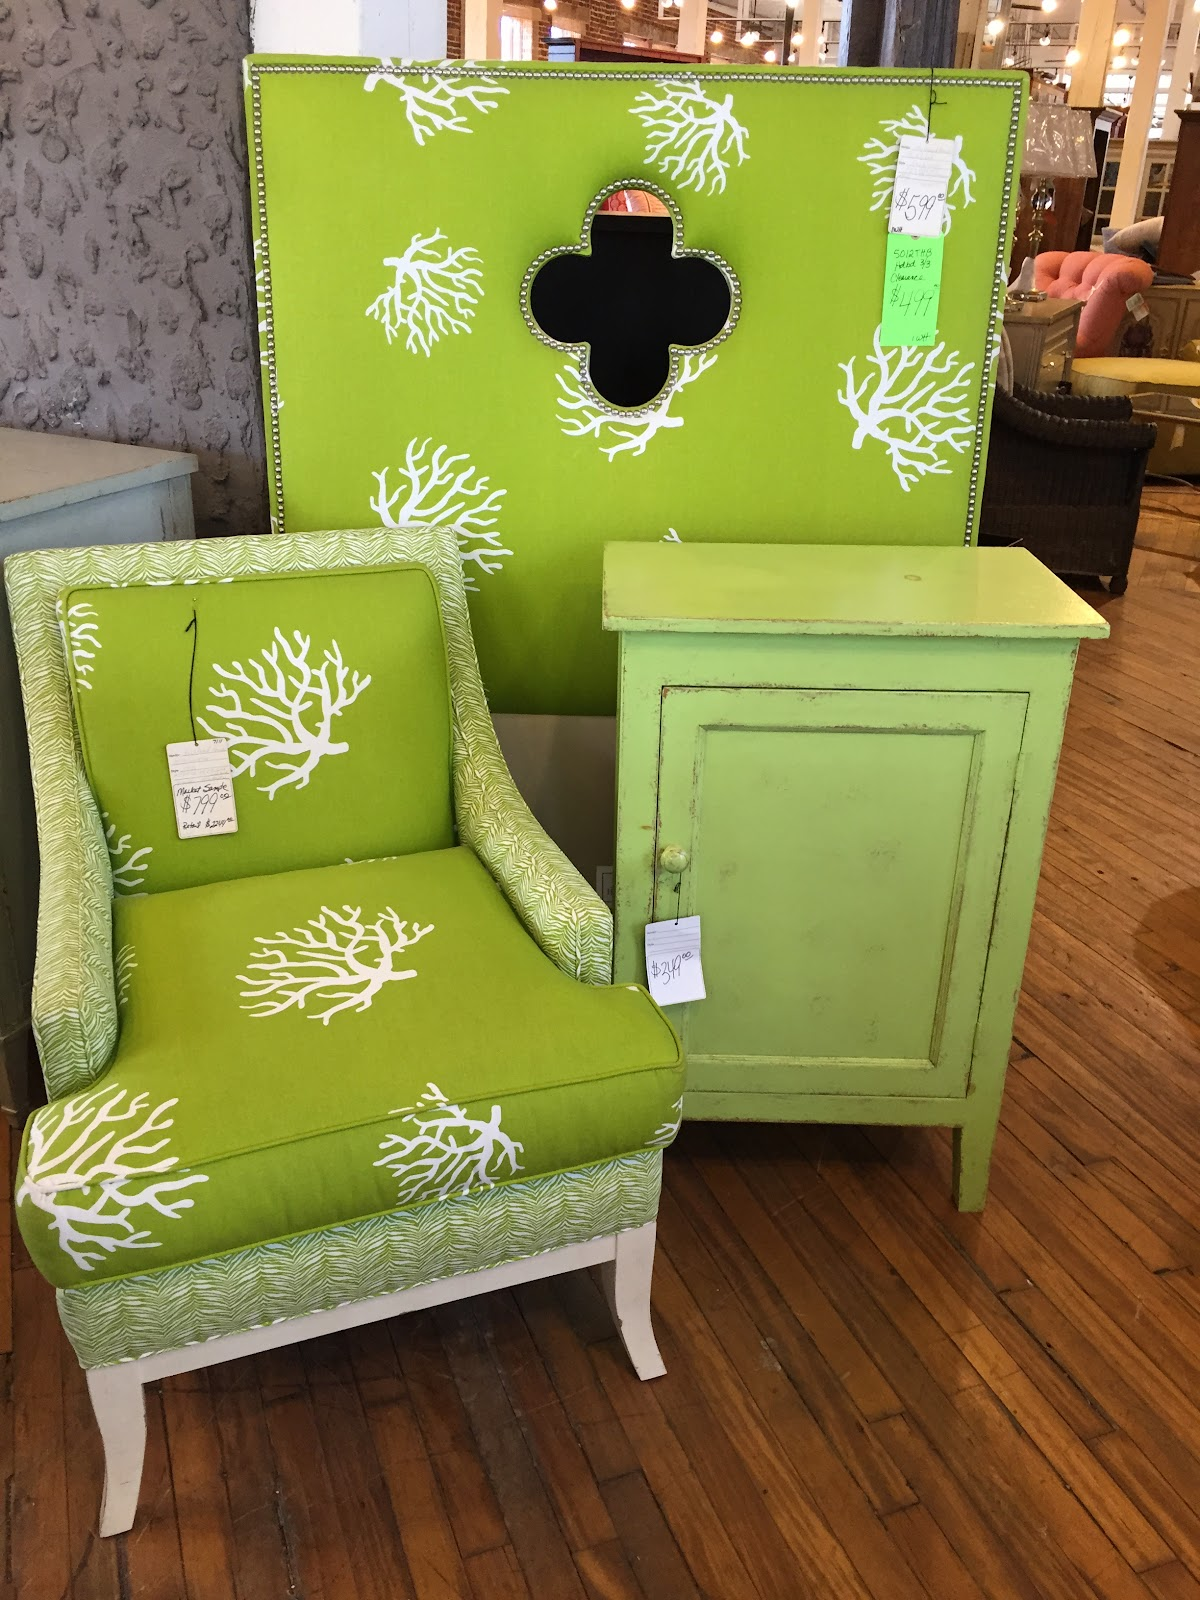 Shop Tour Green Front Furniture In Farmville Part 3